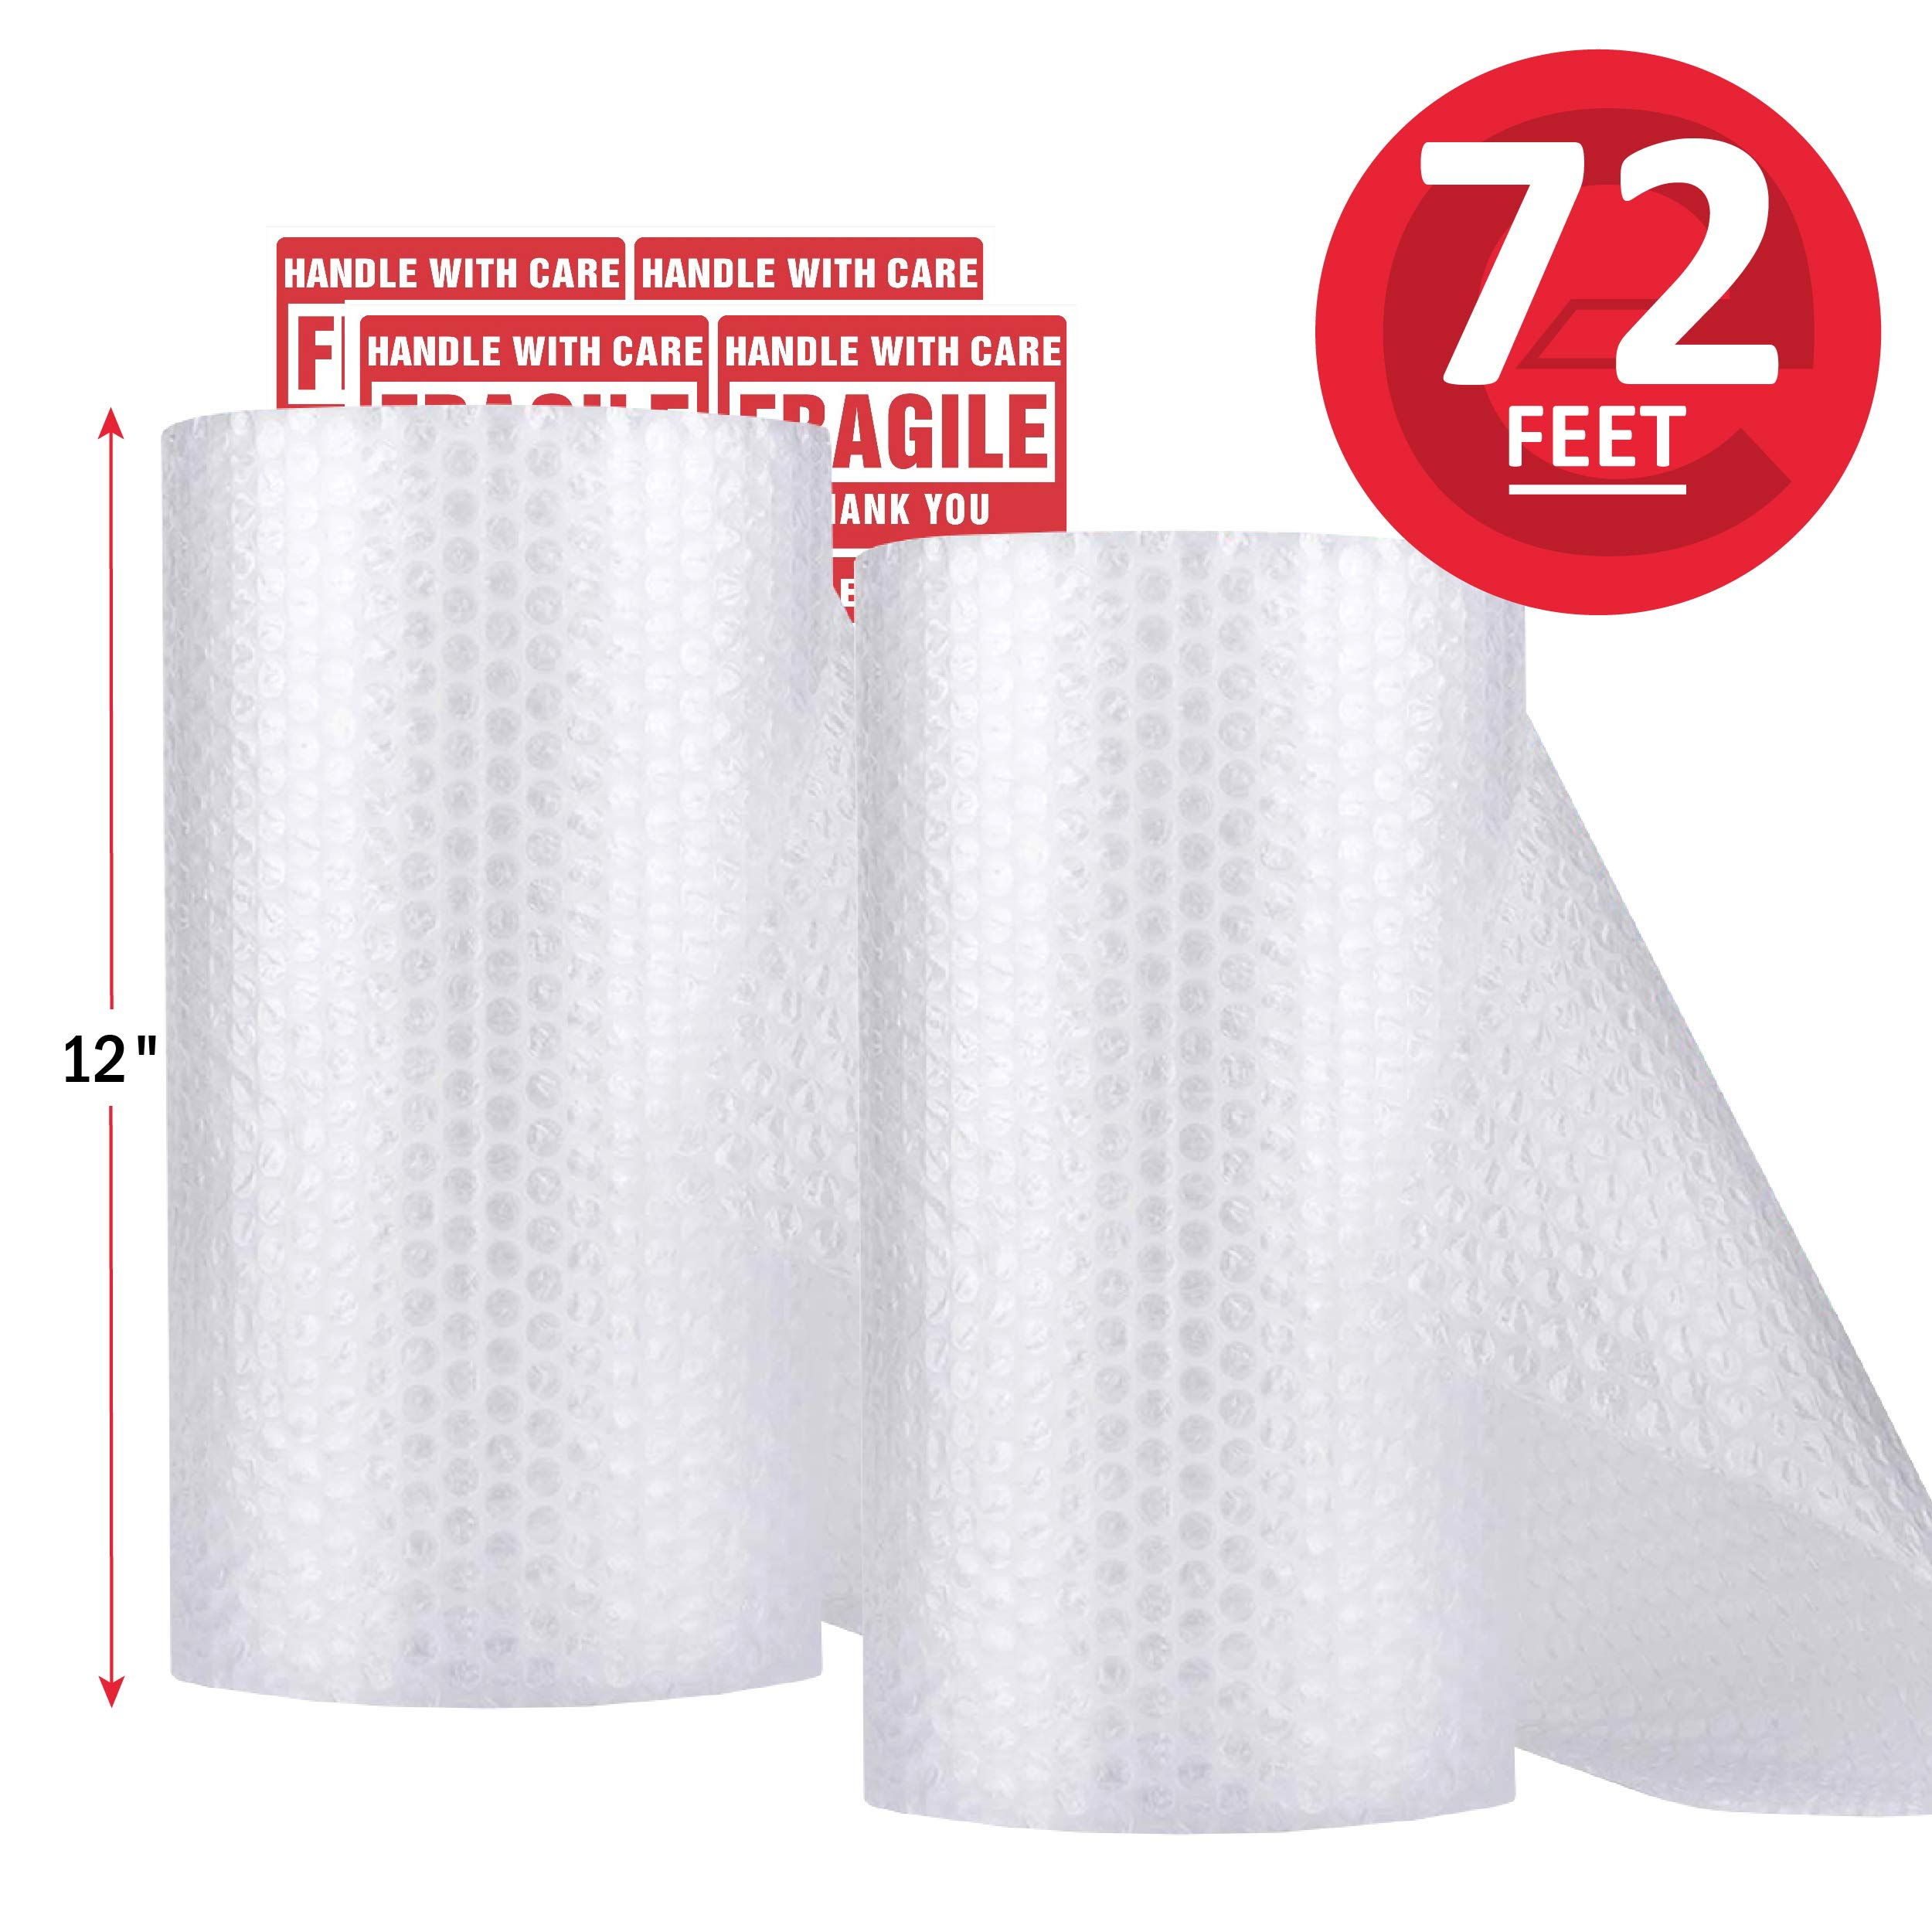 enKo (2 Pack) 12 inch x 72 feet Bubble Cushioning Wrap Roll Perforated 20 Fragile Sticker Labels for Moving Shipping Packing Boxes Supplies by enKo Products